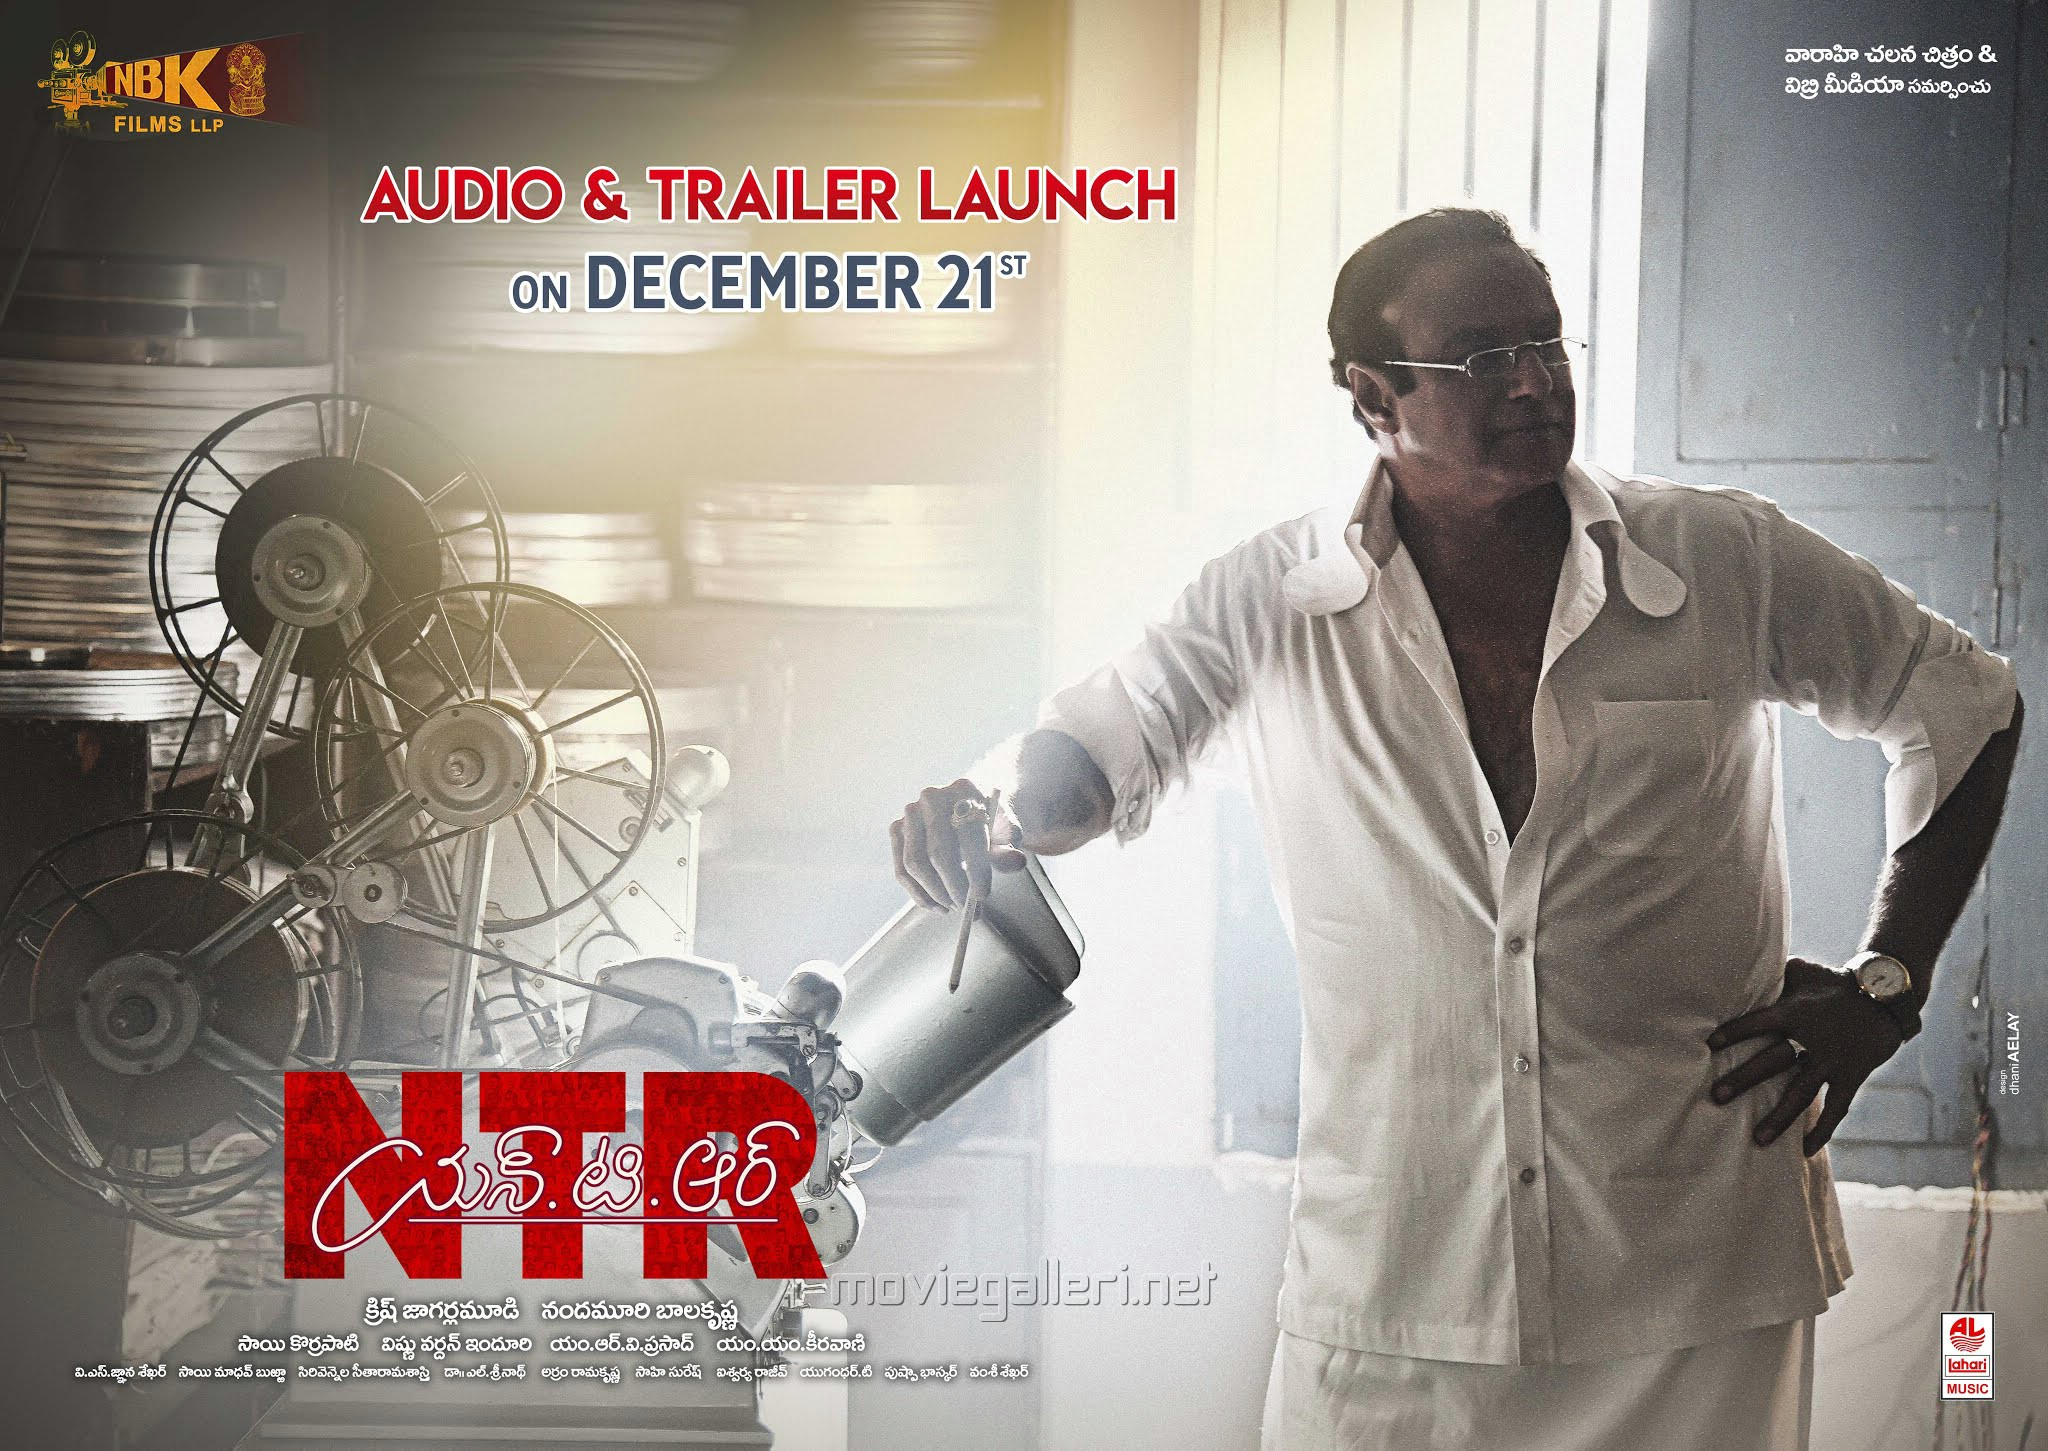 NTR Biopic Trailer and Audio Launch on Dec 21st Wallpaper HD